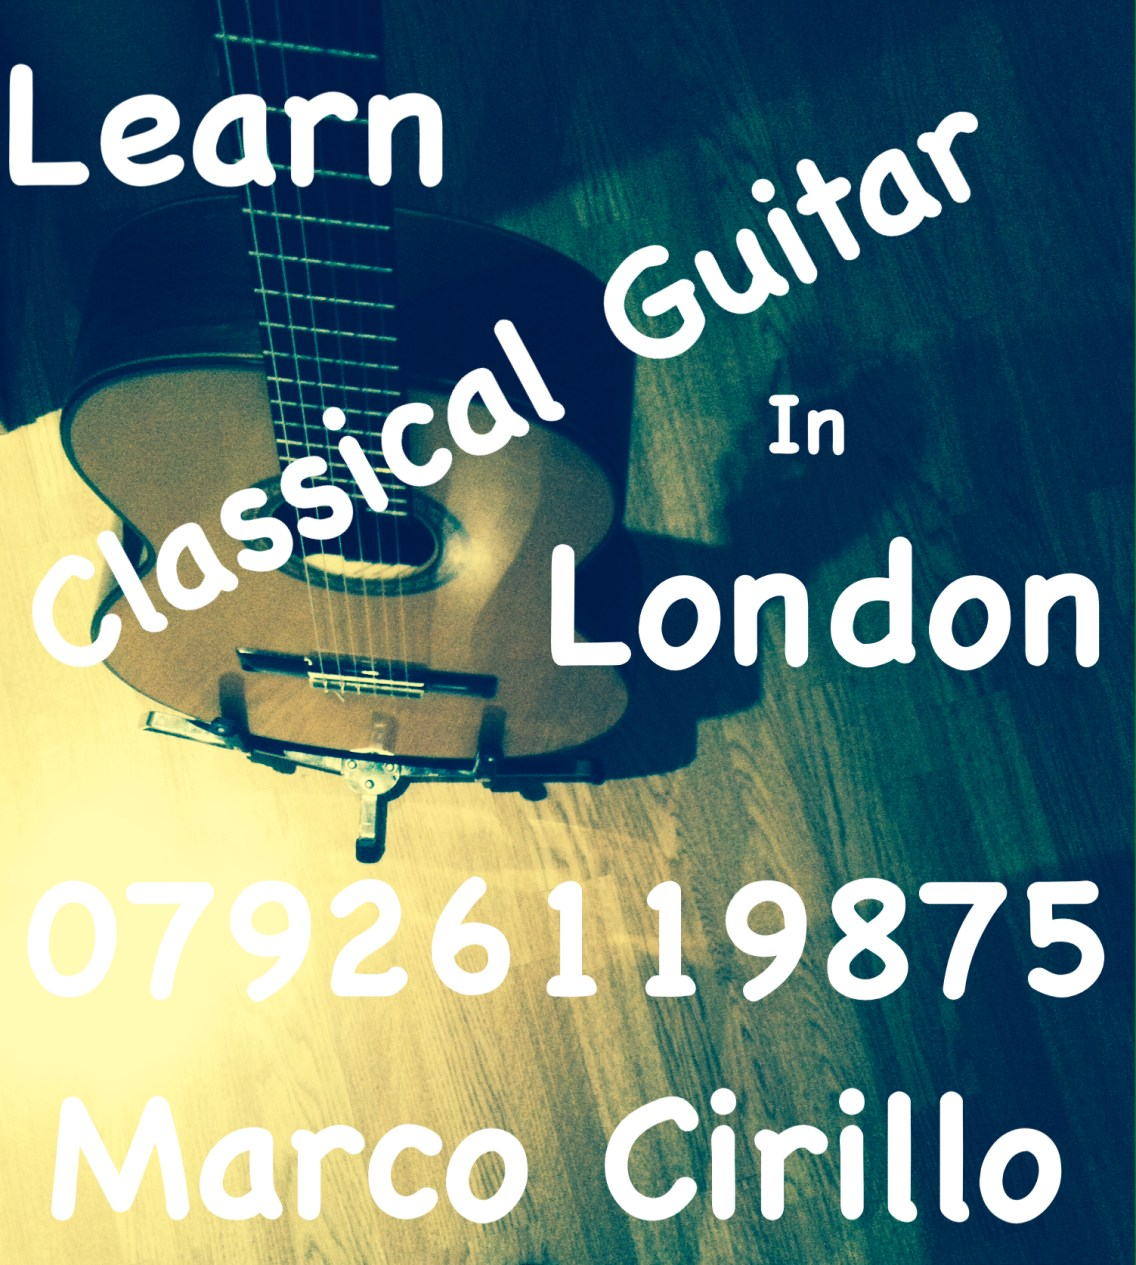 Learn Classical Guitar In London - Classical Guitar Teacher in London - London Guitar Lesson with Marco Cirillo Pro Guitar Teacher in London - Check out Marco's qualification here !!!